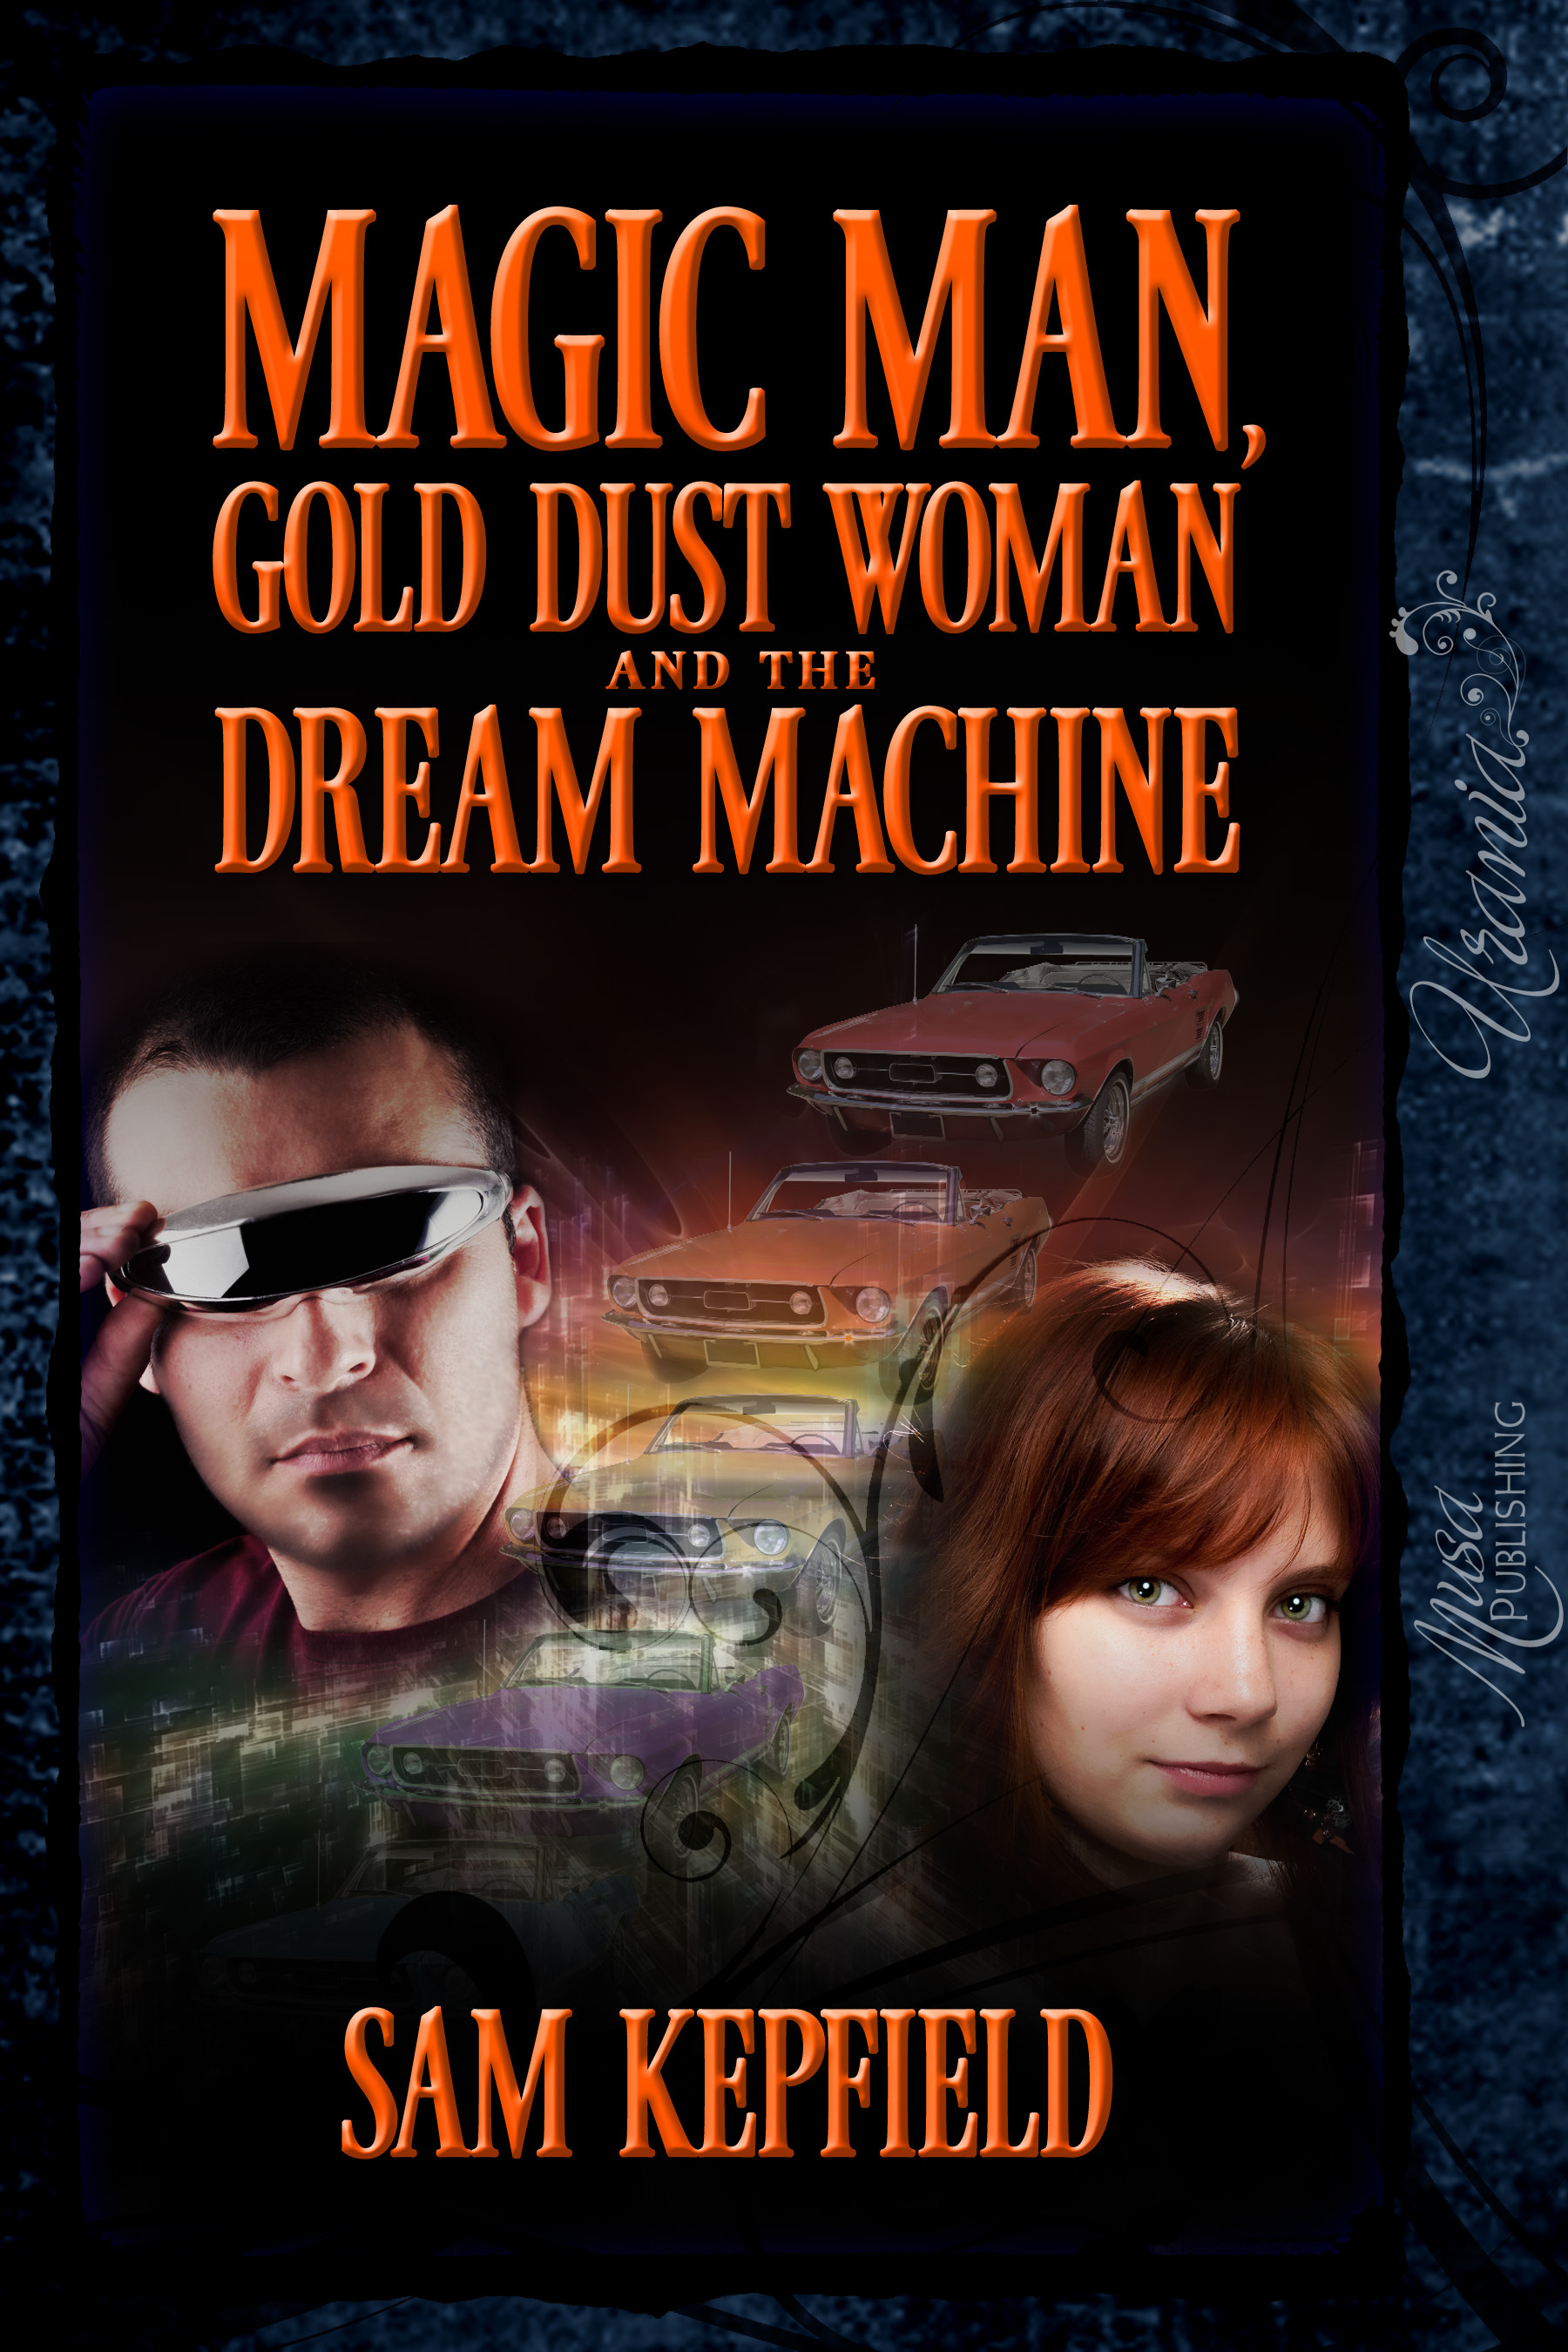 Magic Man, Gold Dust Woman & The Dream Machine